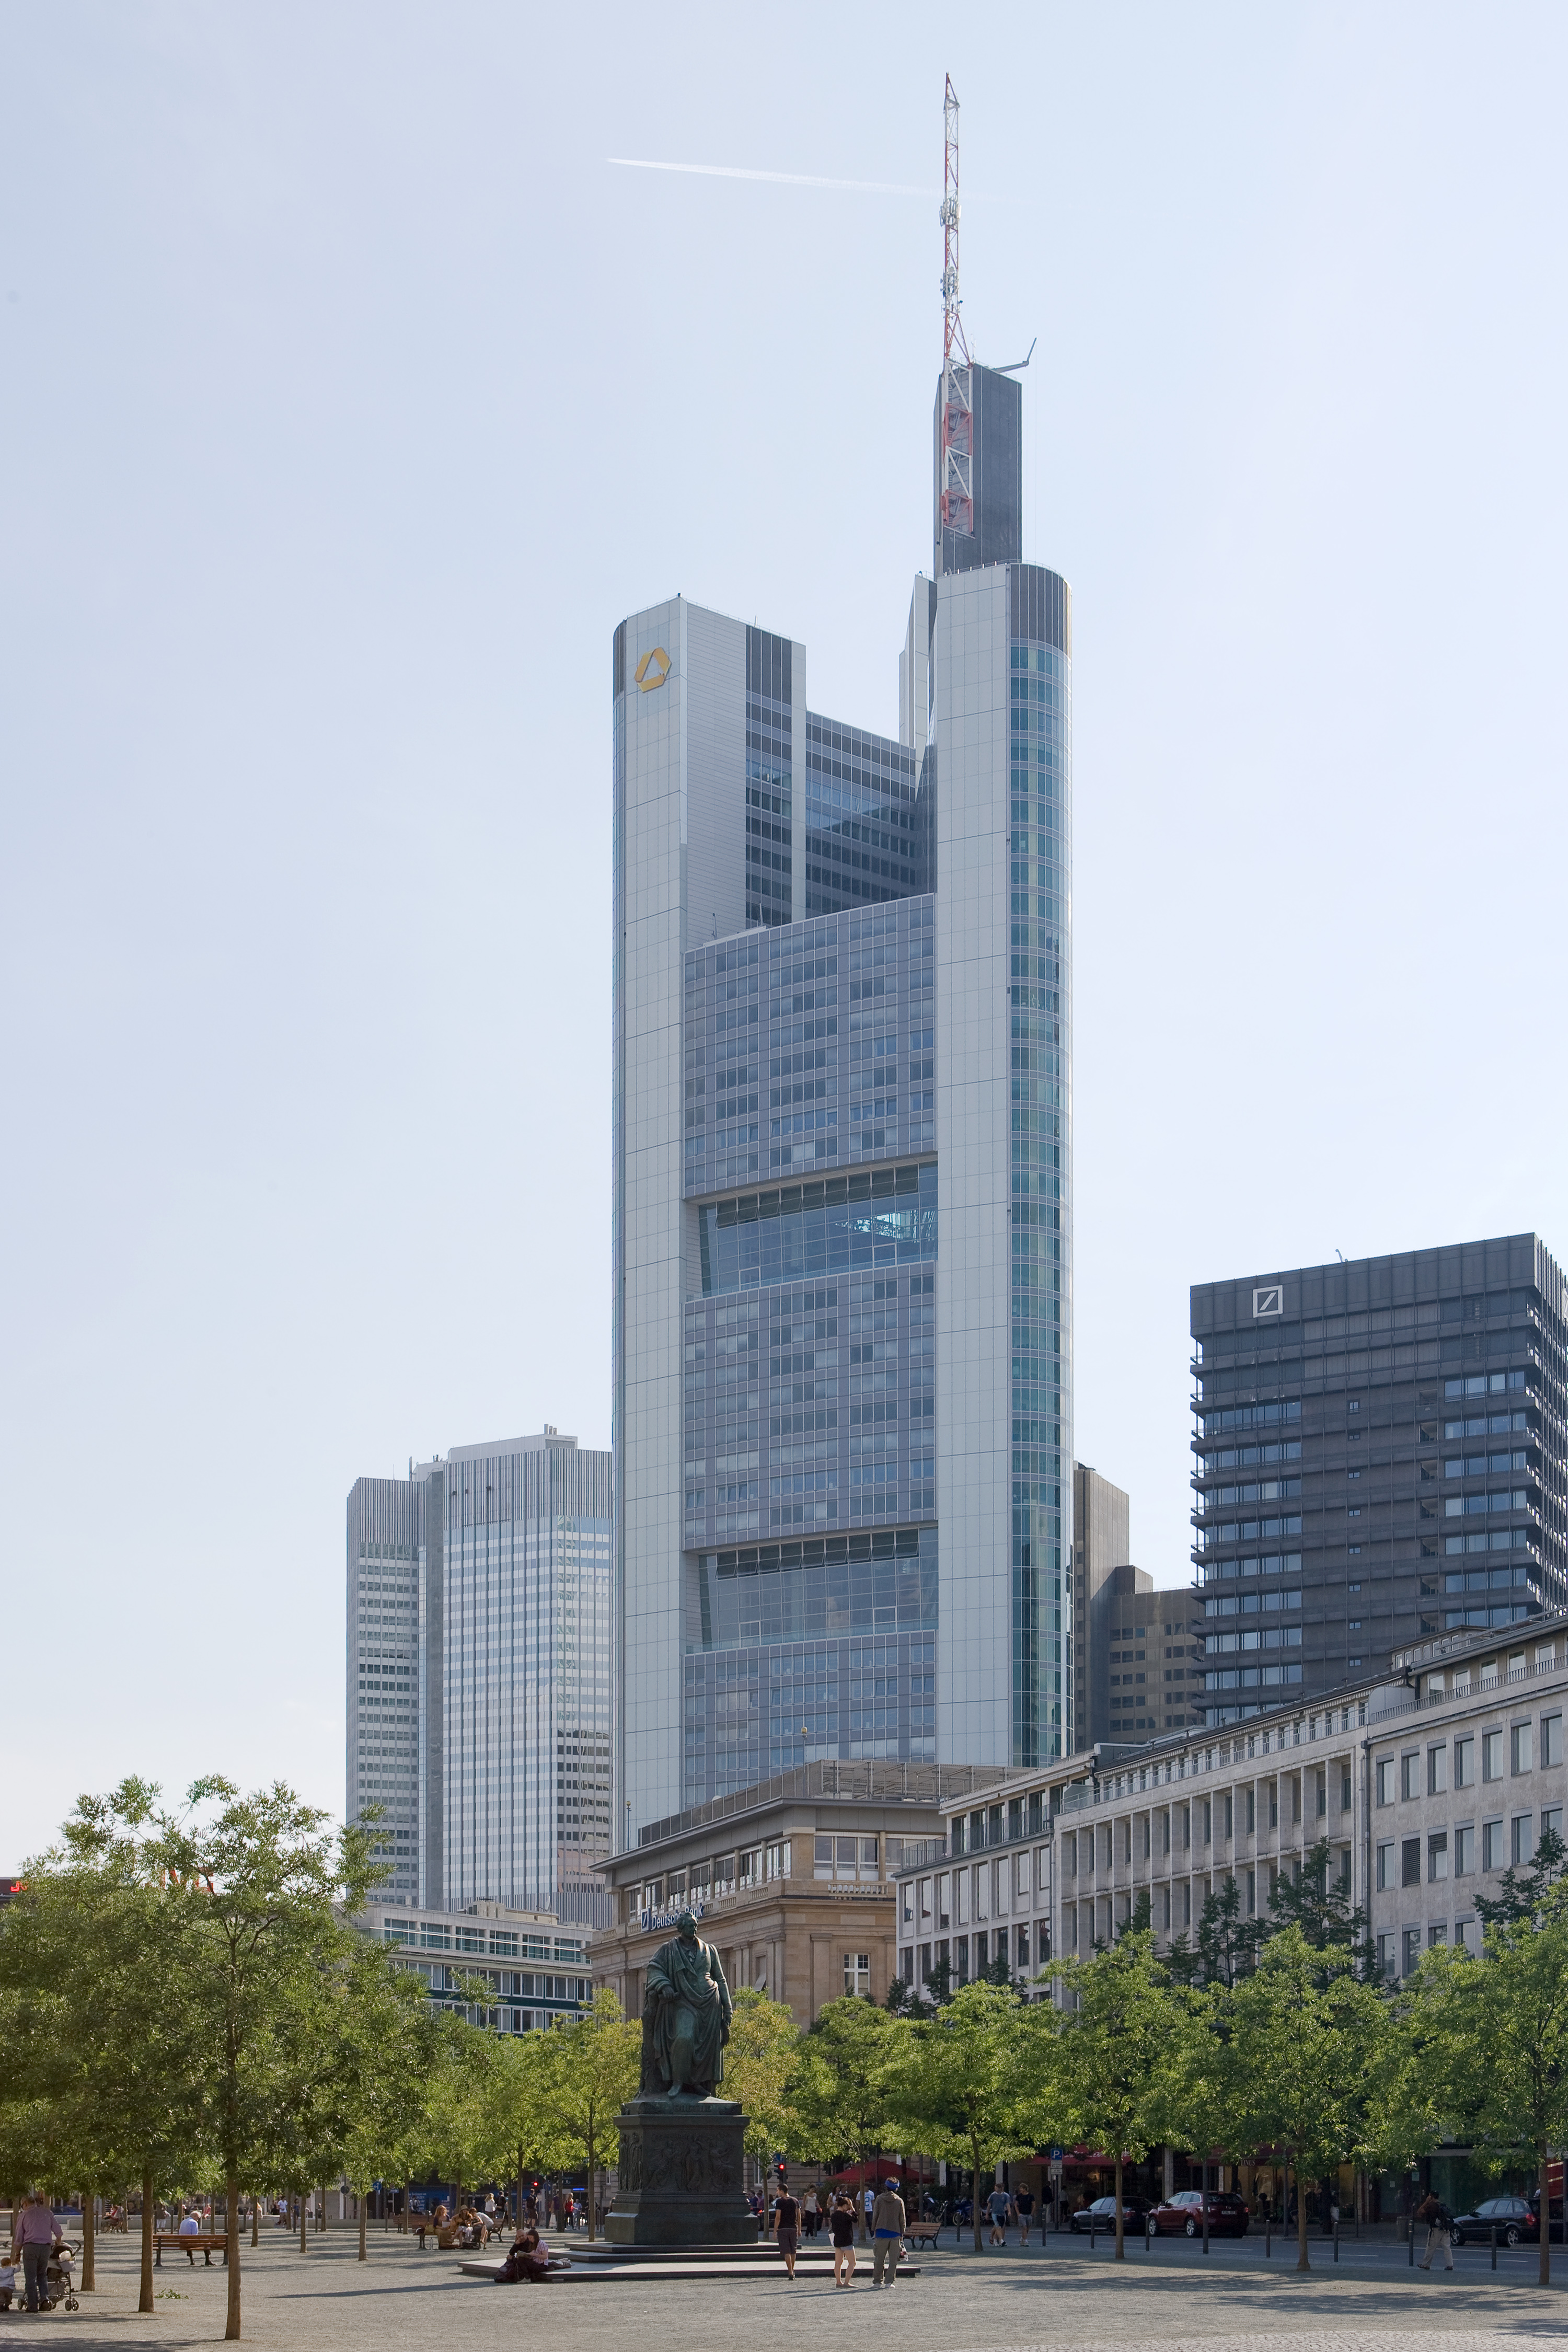 Commerzbank Tower is The